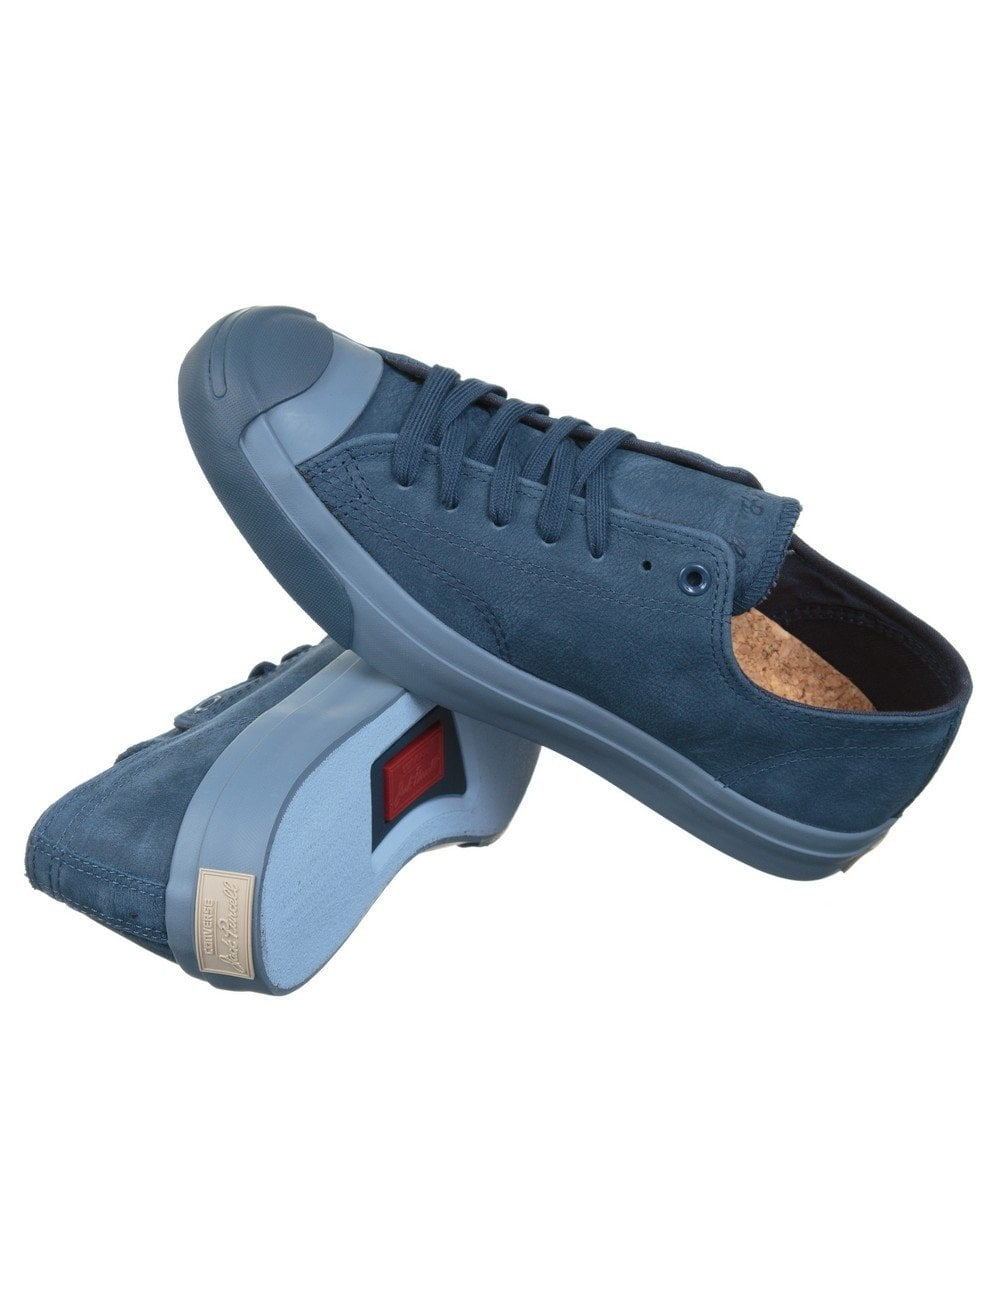 4e92edbb932 Converse Jack Purcell Jack Ox Shoes - Navy Navy - Footwear from Fat ...